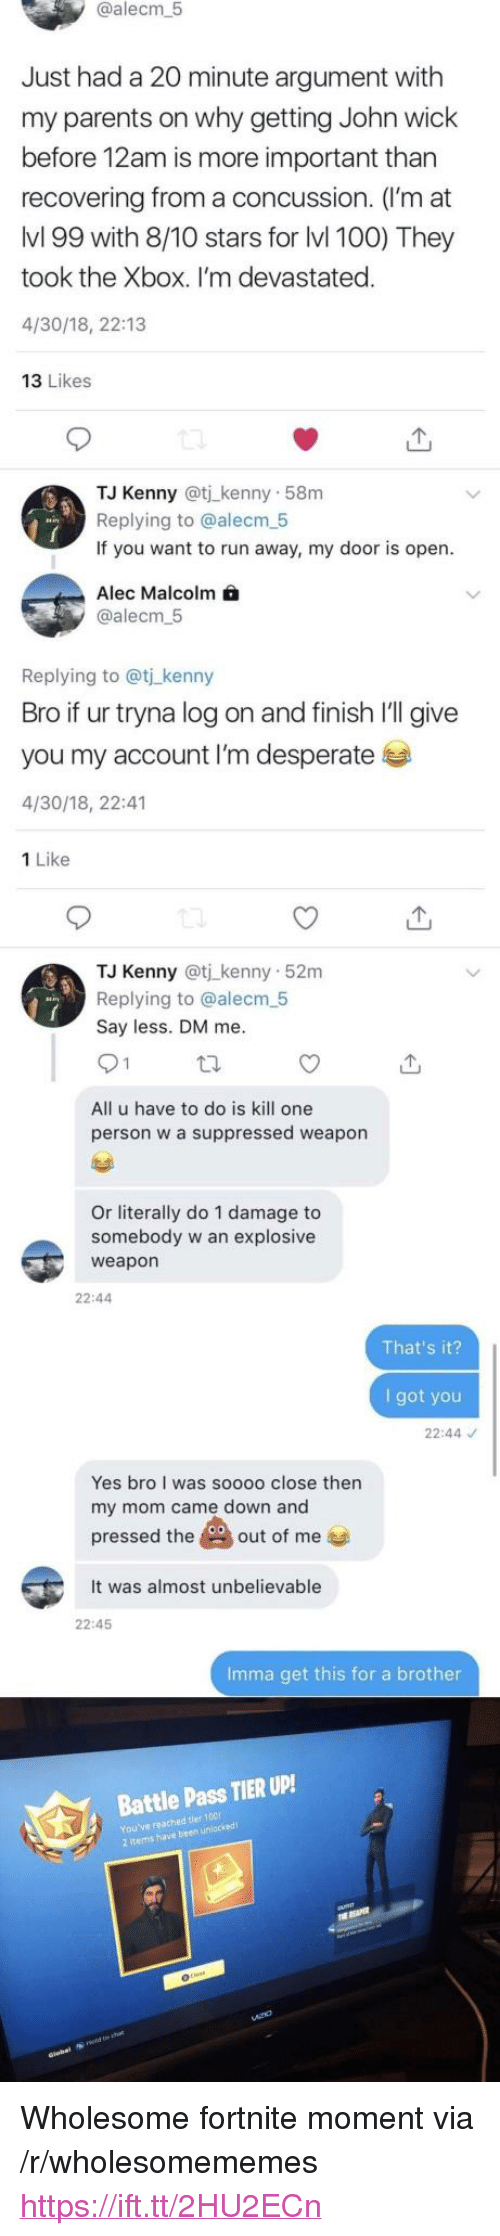 """Concussion: @alecm  5  Just had a 20 minute argument with  my parents on why getting John wick  before 12am is more important than  recovering from a concussion. (I'm at  lvl 99 with 8/10 stars for lvl 100) They  took the Xbox. I'm devastated.  4/30/18, 22:13  13 Likes  TJ Kenny @tj kenny 58m  Replying to @alecm 5  If you want to run away, my door is open  Alec Malcolm  @alecm.5  Replying to @t kenny  Bro if ur tryna log on and finish I'll give  you my account I'm desperate  4/30/18, 22:41  1 Like  TJ Kenny @tj kenny 52m  Replying to @alecm 5  Say less. DM me  All u have to do is kill one  person w a suppressed weapon  Or literally do 1 damage to  somebody w an explosive  weapon  22:44  That's it?  I got you  22:44  Yes bro I was soooo close thern  my mom came down and  pressed theout of me  It was almost unbelievable  22:45  Imma get this for a brother  Battle Pass TIER UP!  You've reached tier 100  2 Items have been unlocked <p>Wholesome fortnite moment via /r/wholesomememes <a href=""""https://ift.tt/2HU2ECn"""">https://ift.tt/2HU2ECn</a></p>"""